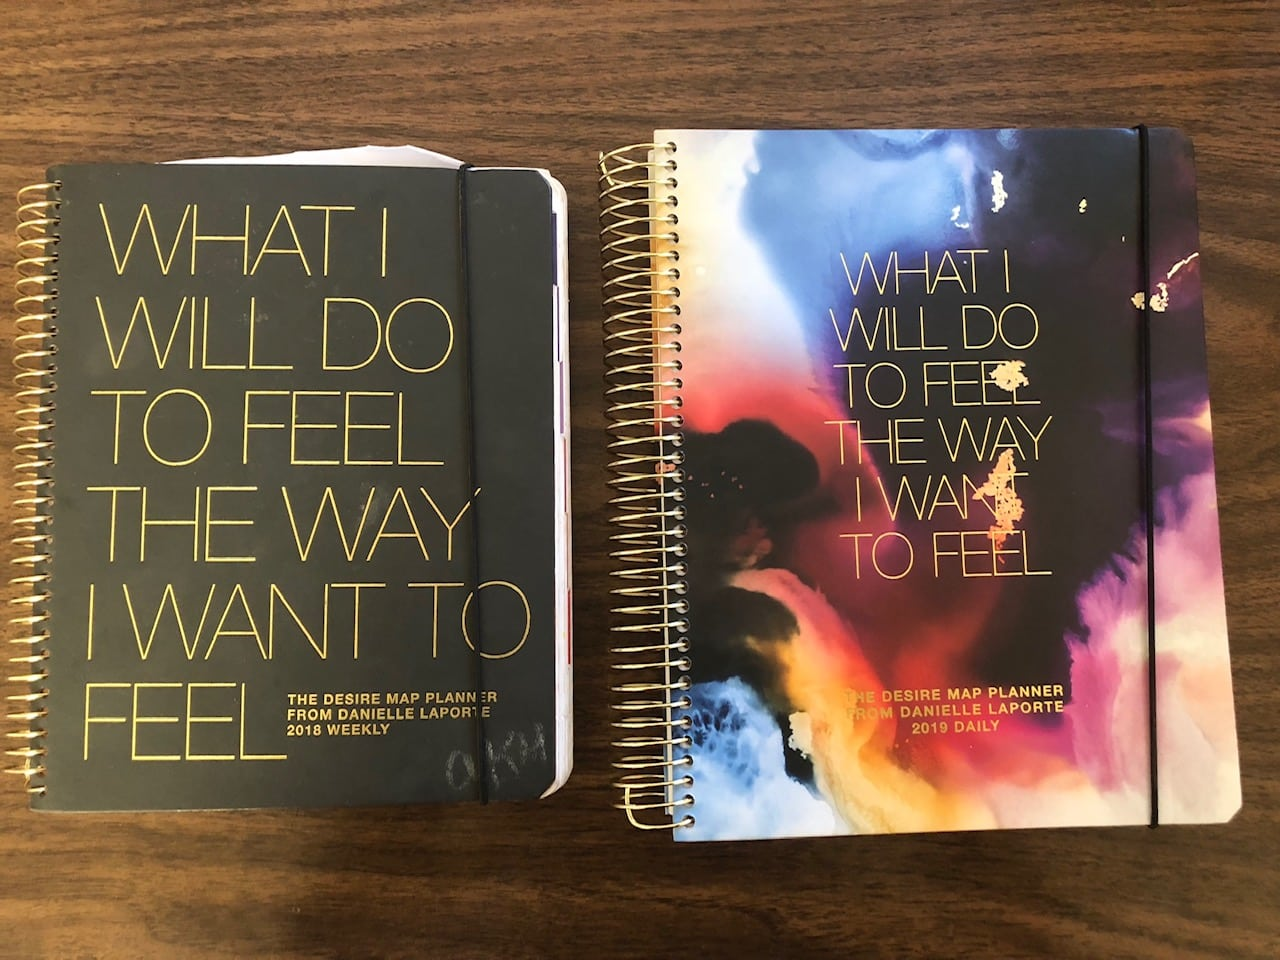 The Desire Map planner (the title is: What I Will Do to Feel the Way I Want to Feel by Danielle Laporte